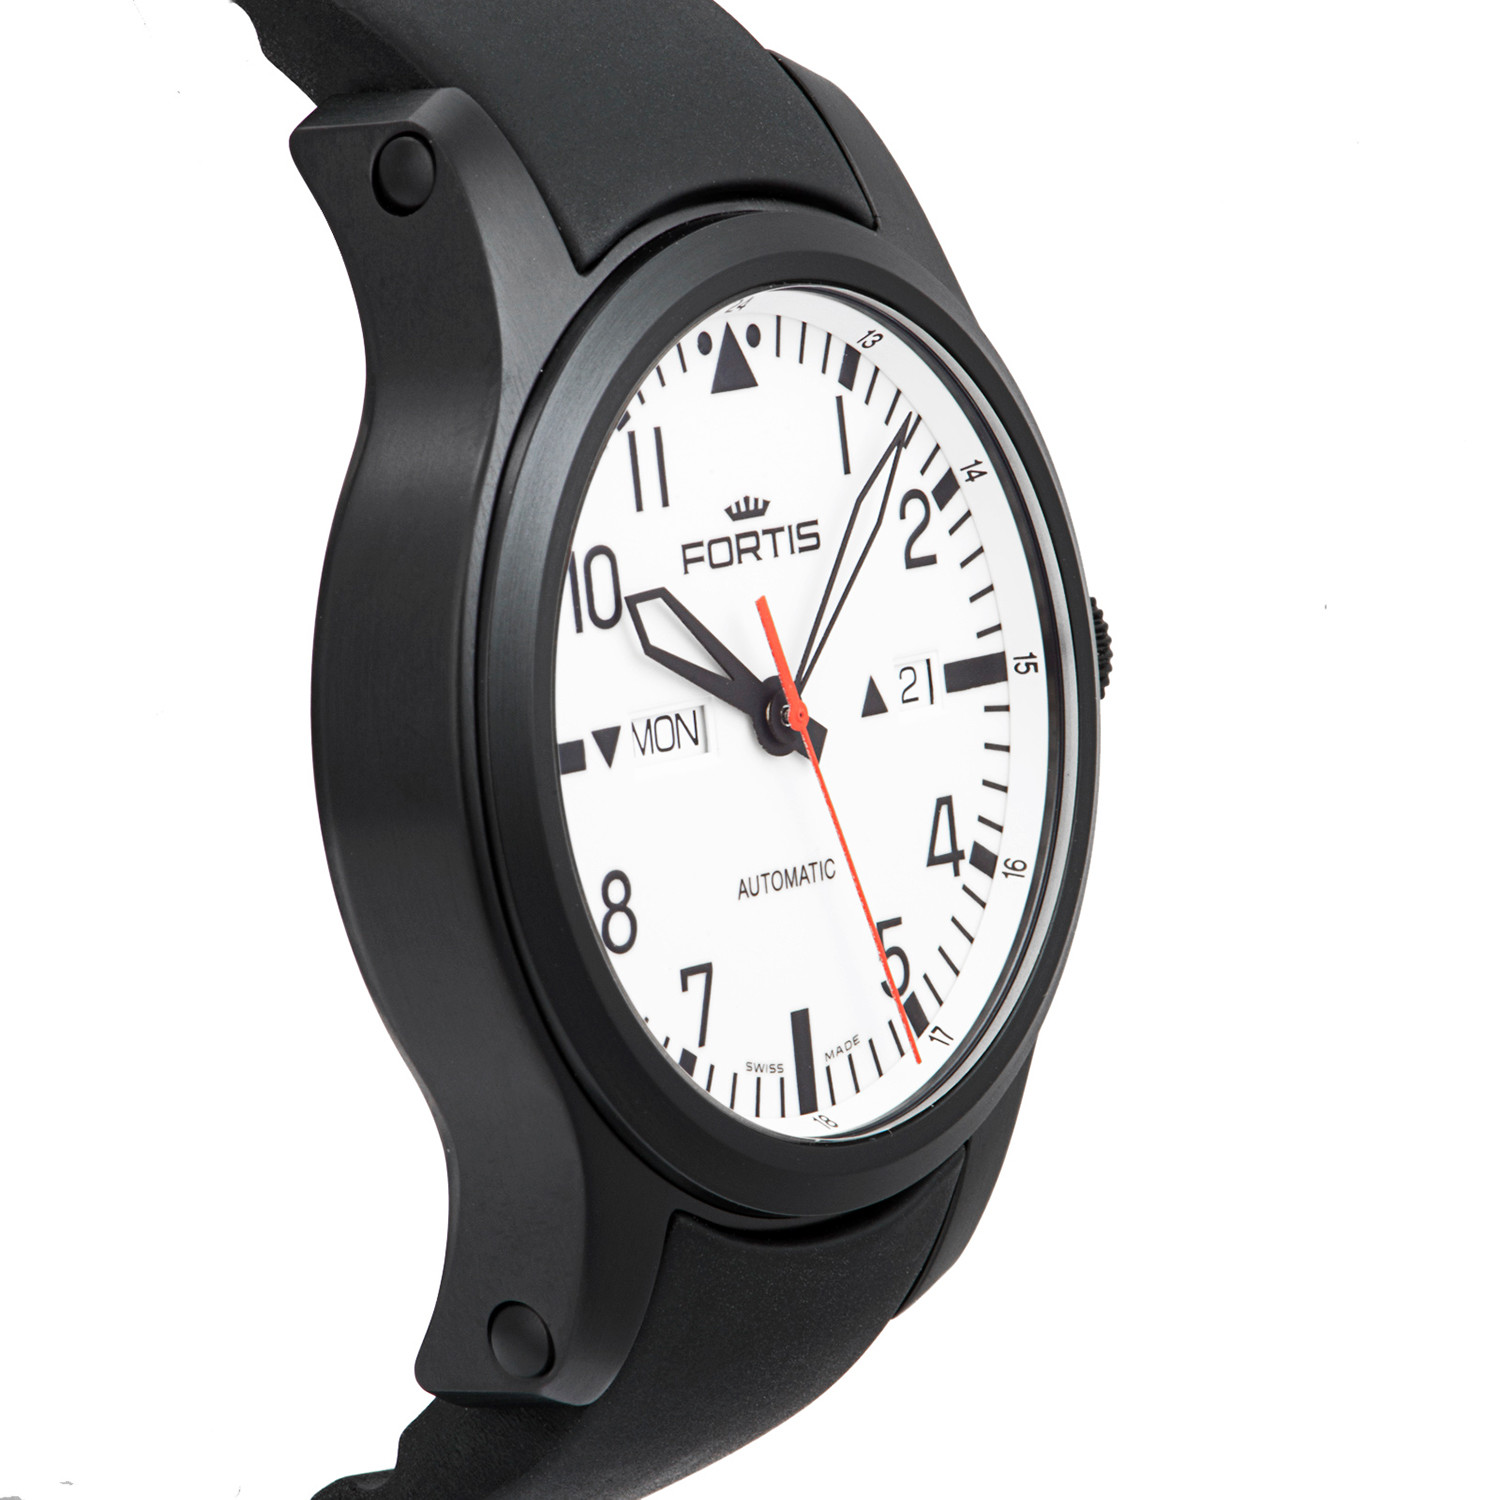 Fortis F-43 Nocturnal Automatic      655 18 12 K - Exceptional Watches